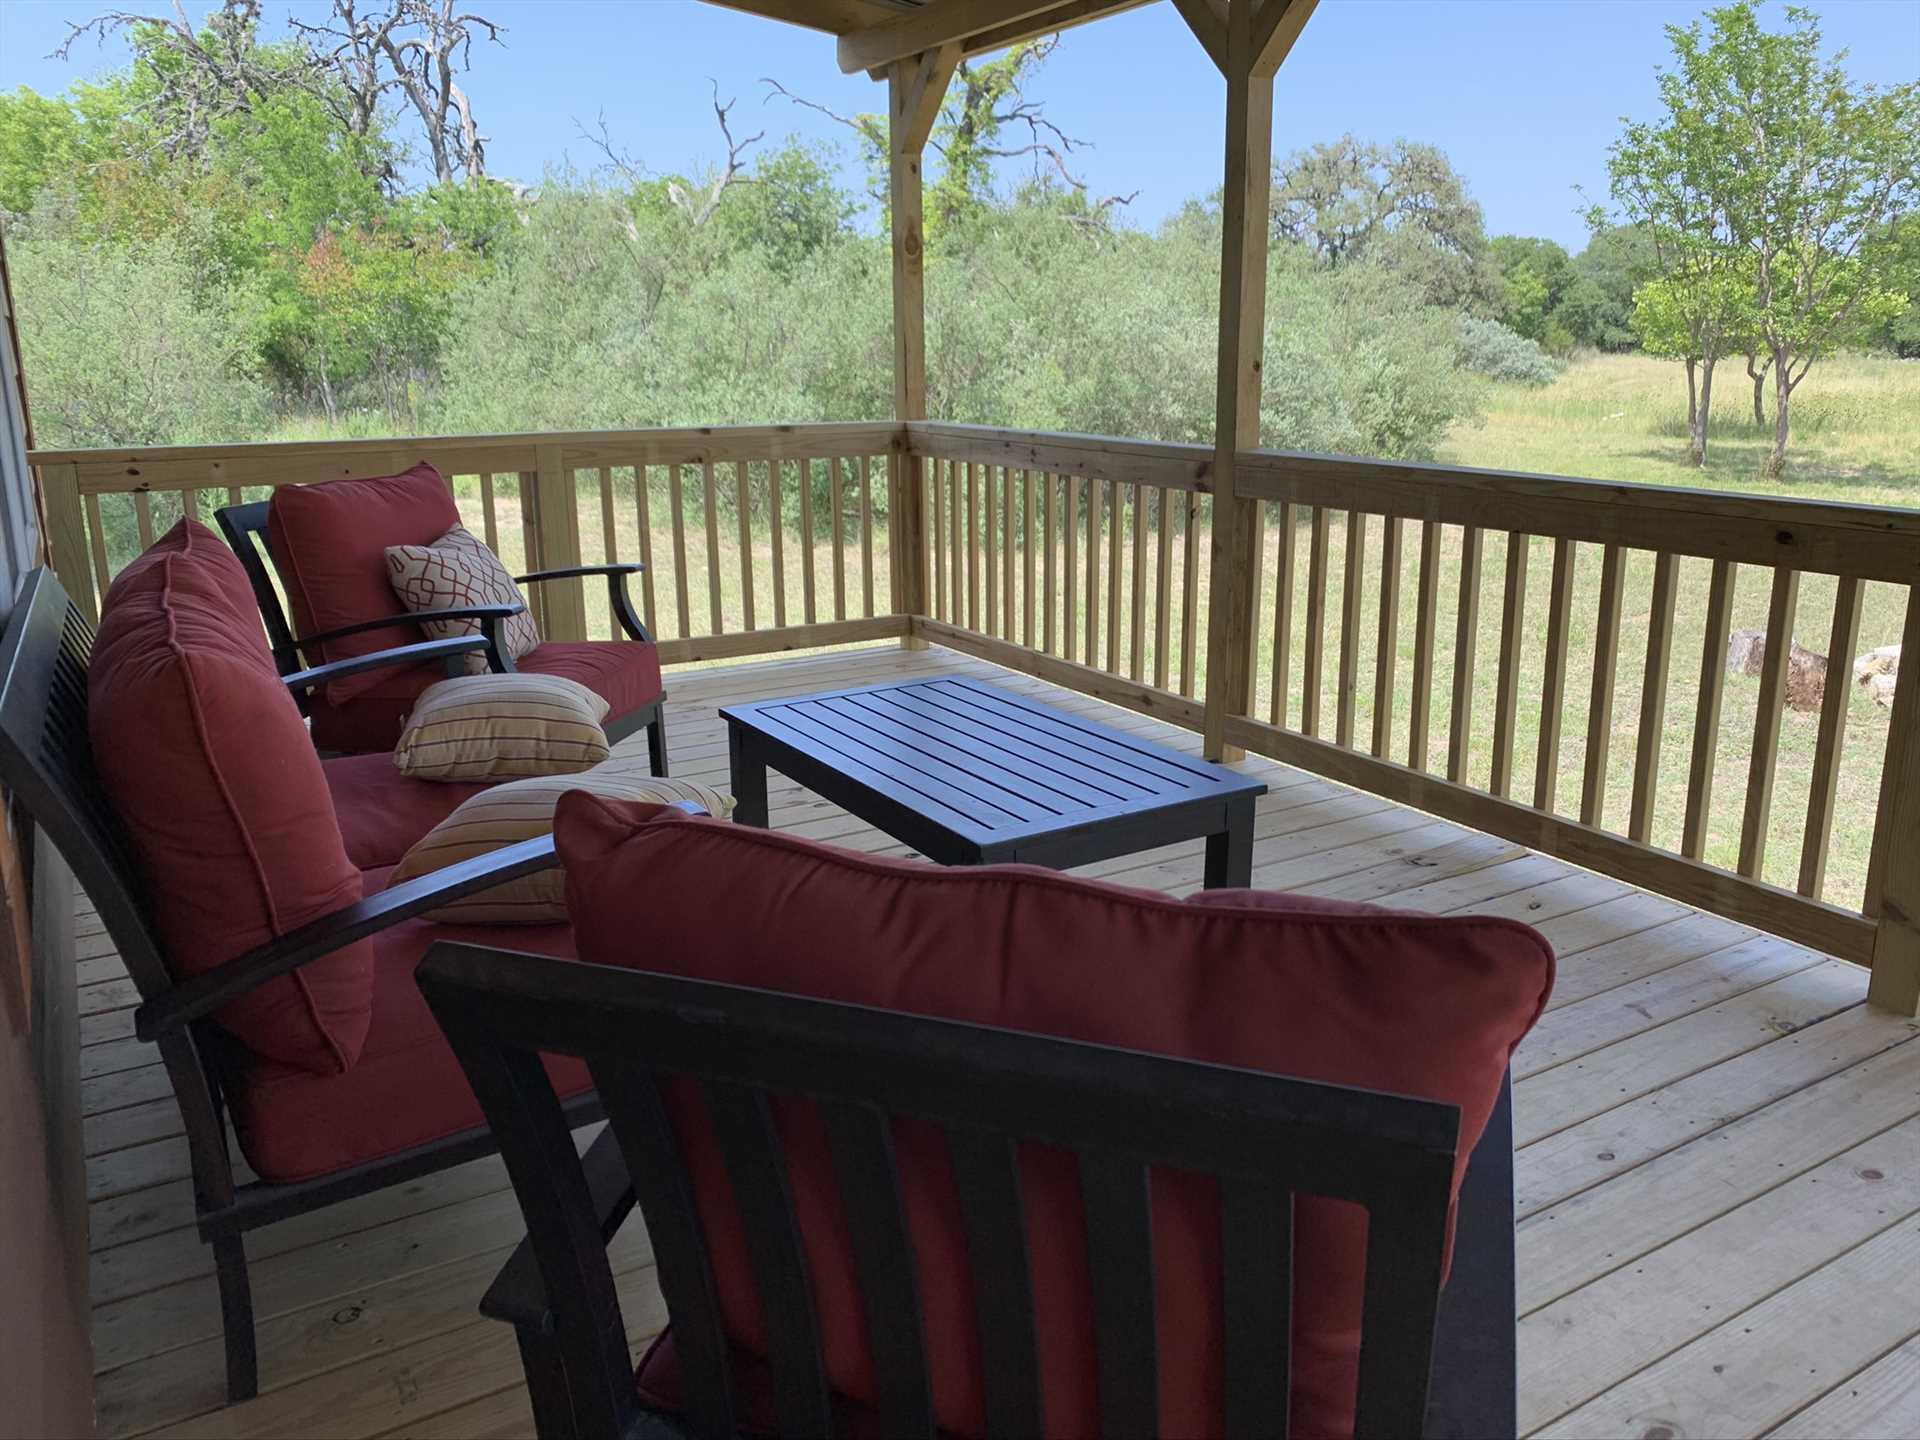 Even with room to accommodate 13 guests, the Hideaway provides private and peaceful spots for relaxation, too-all with the beautiful Hill Country in the background.